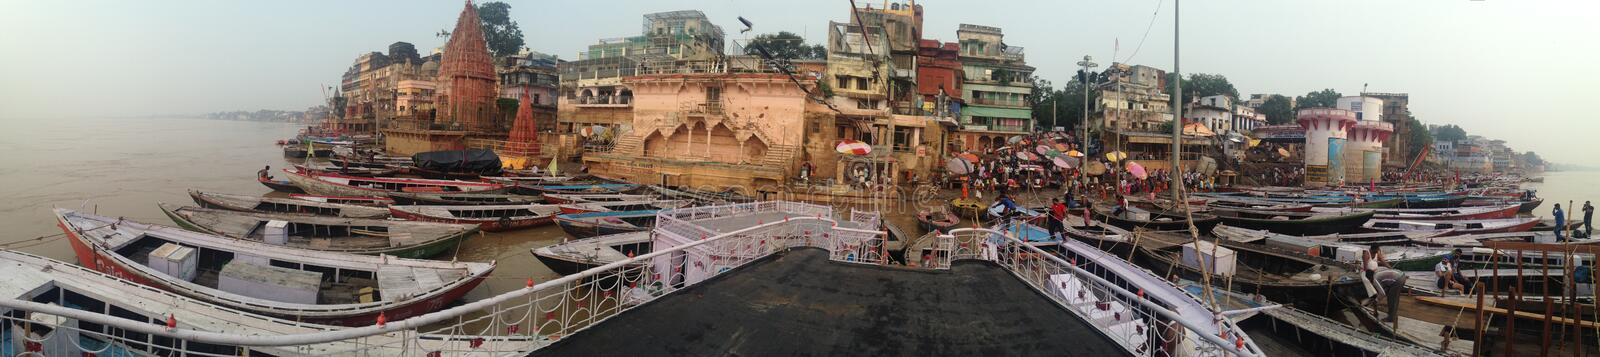 Panorama of holy Varanasi with pilgrims taking their bath in the Ganges and locals waiting for tourists in September 2016 royalty free stock photography